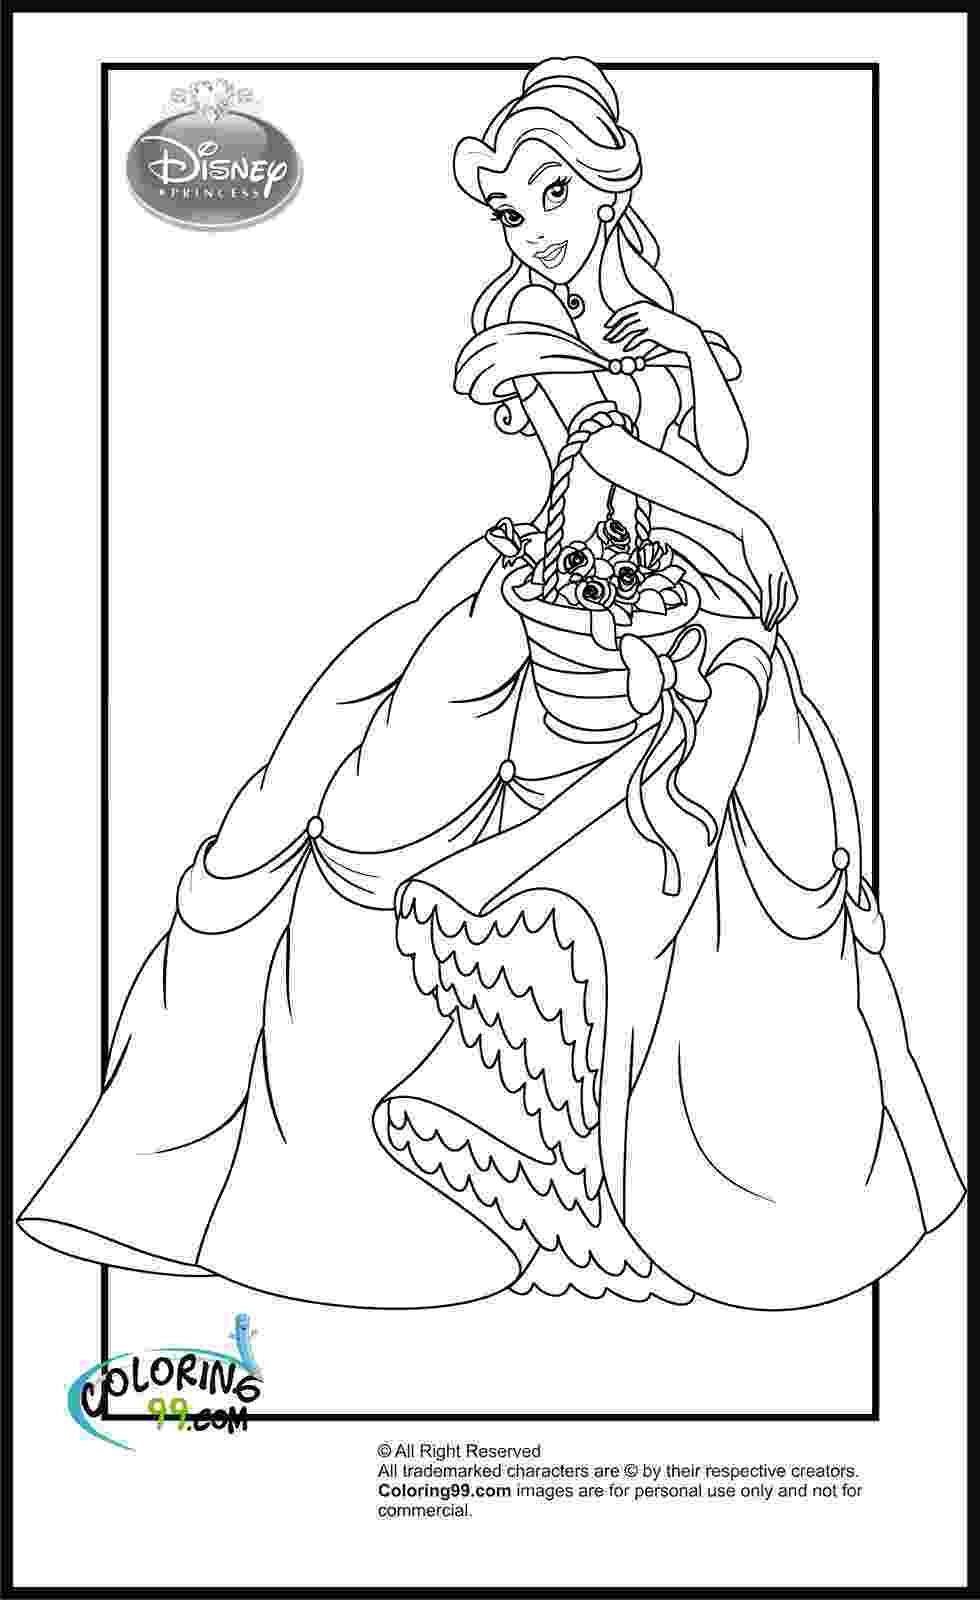 printable coloring pages for disney princess disney princess coloring pages minister coloring pages disney princess for printable coloring